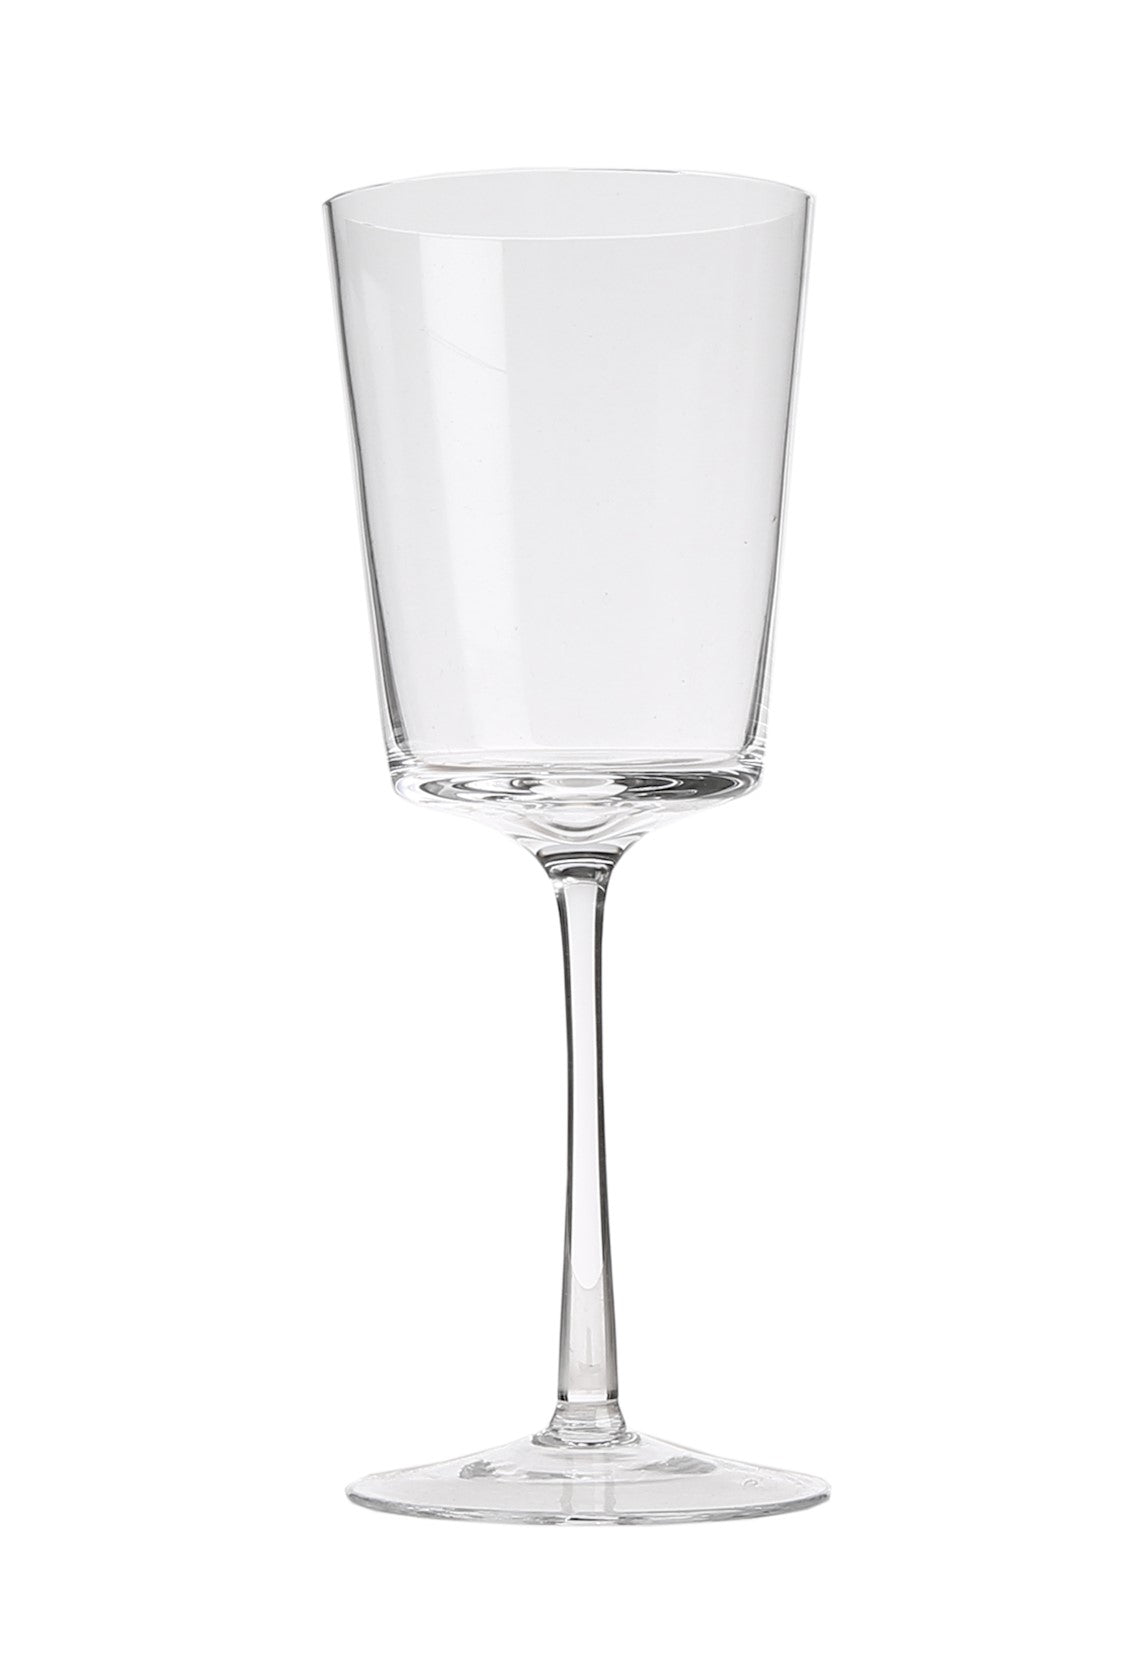 RED WINE GLASSES 'SPLASH' ( 6 x ) - Drinkware - SCAPA HOME - SCAPA HOME OFFICIAL